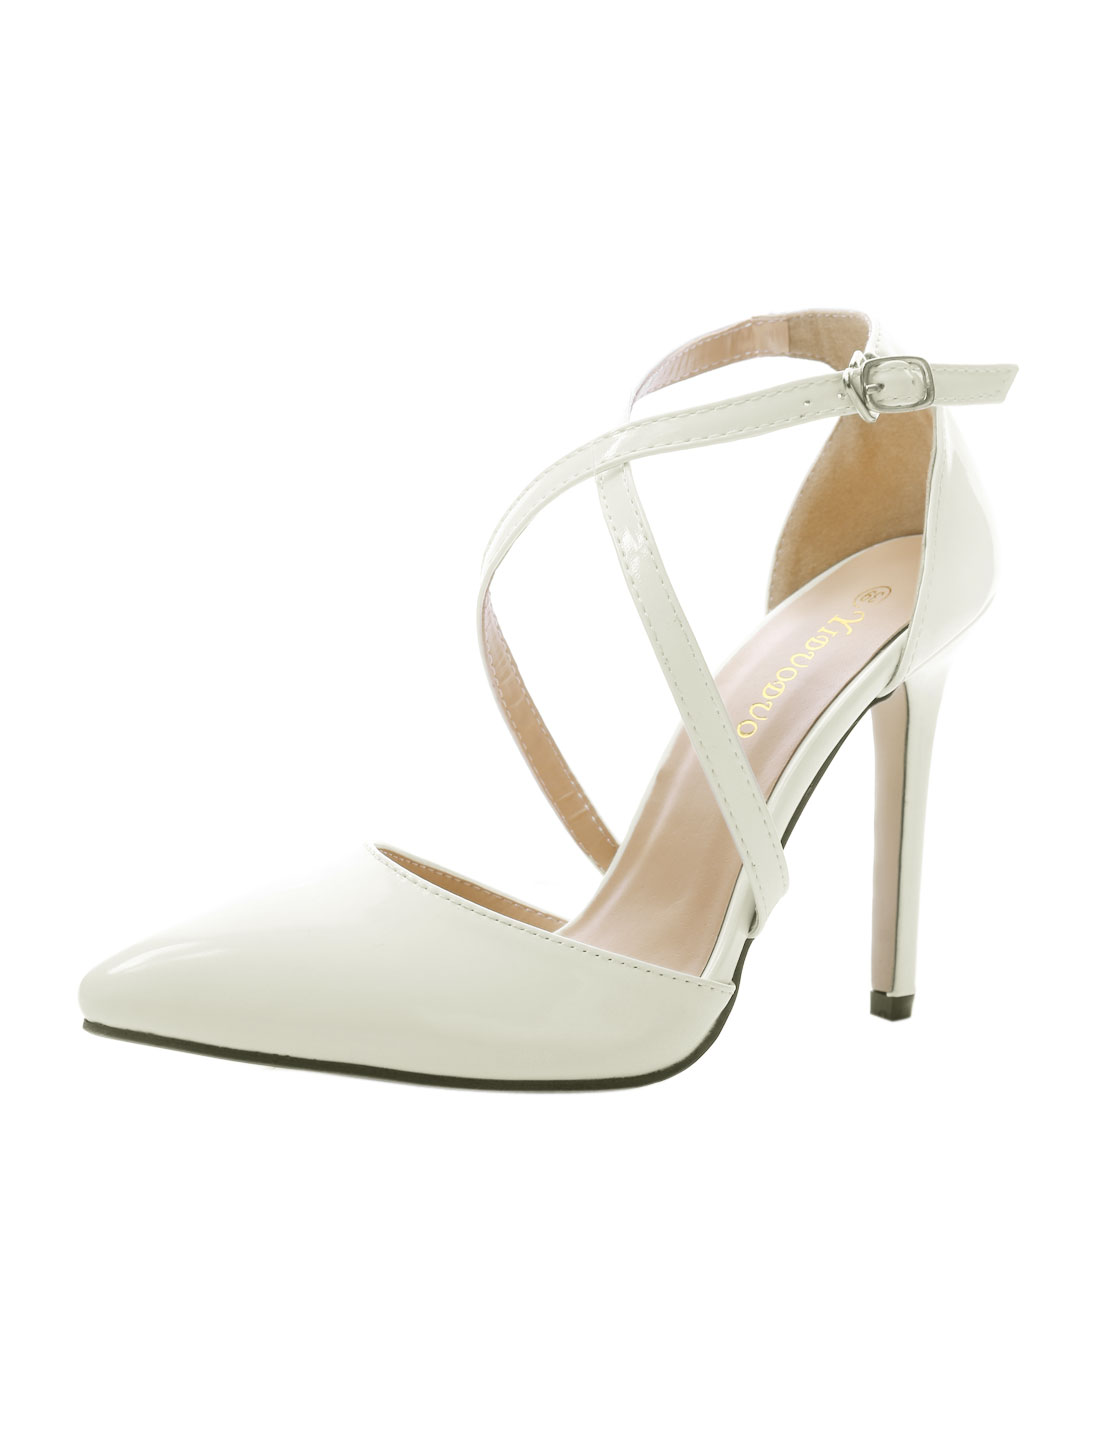 Ladies Point Toe Buckled Crisscross Ankle Straps Pumps White US 7.5